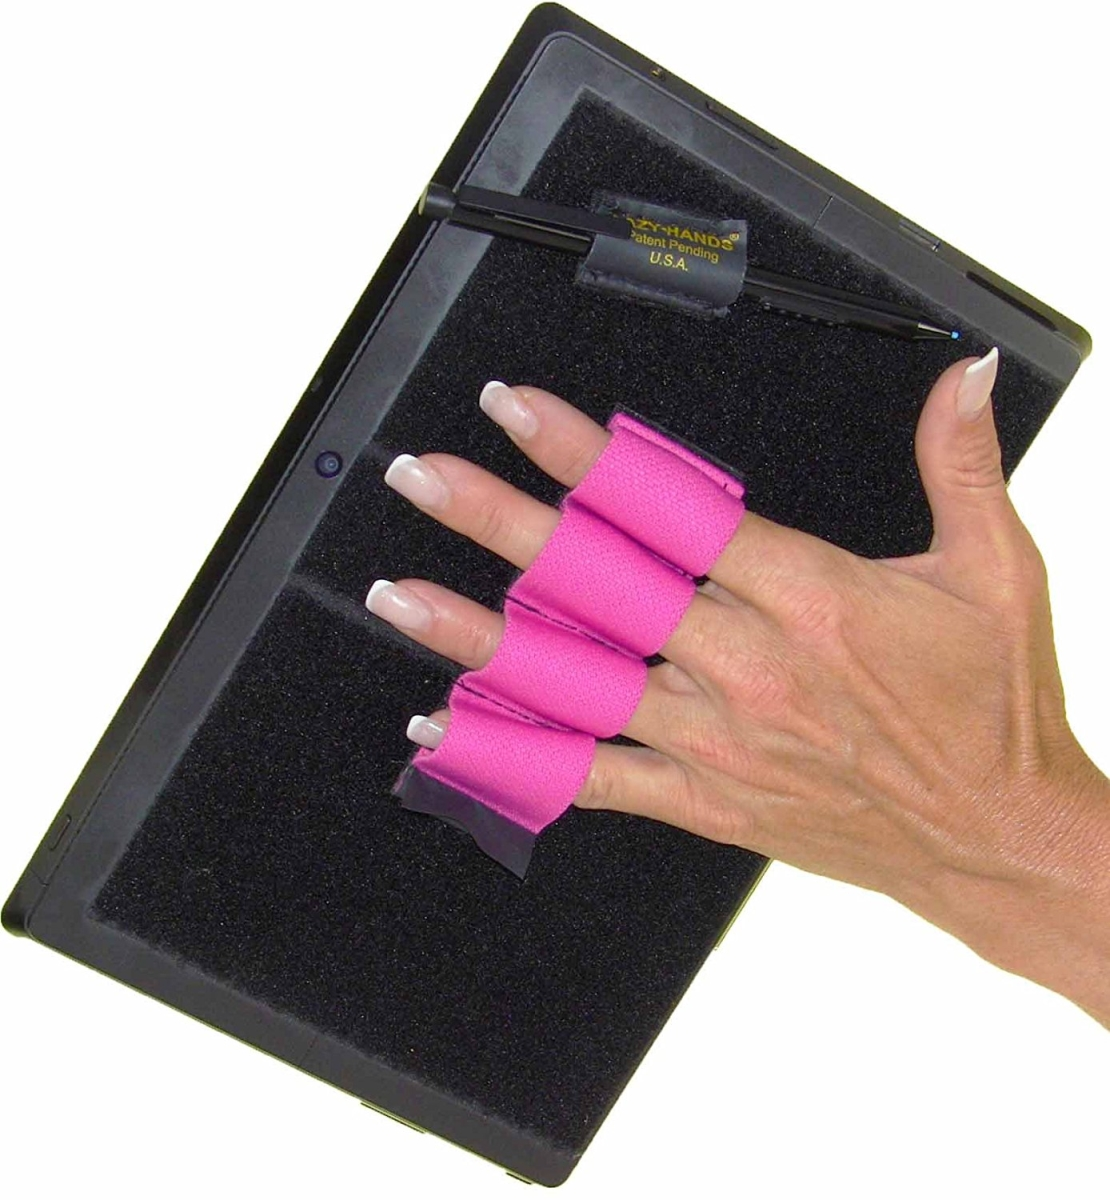 Lazy-Hands 201583 4-Loop Grip for Microsoft Surface with Stylus Grip-Fits Most Pink